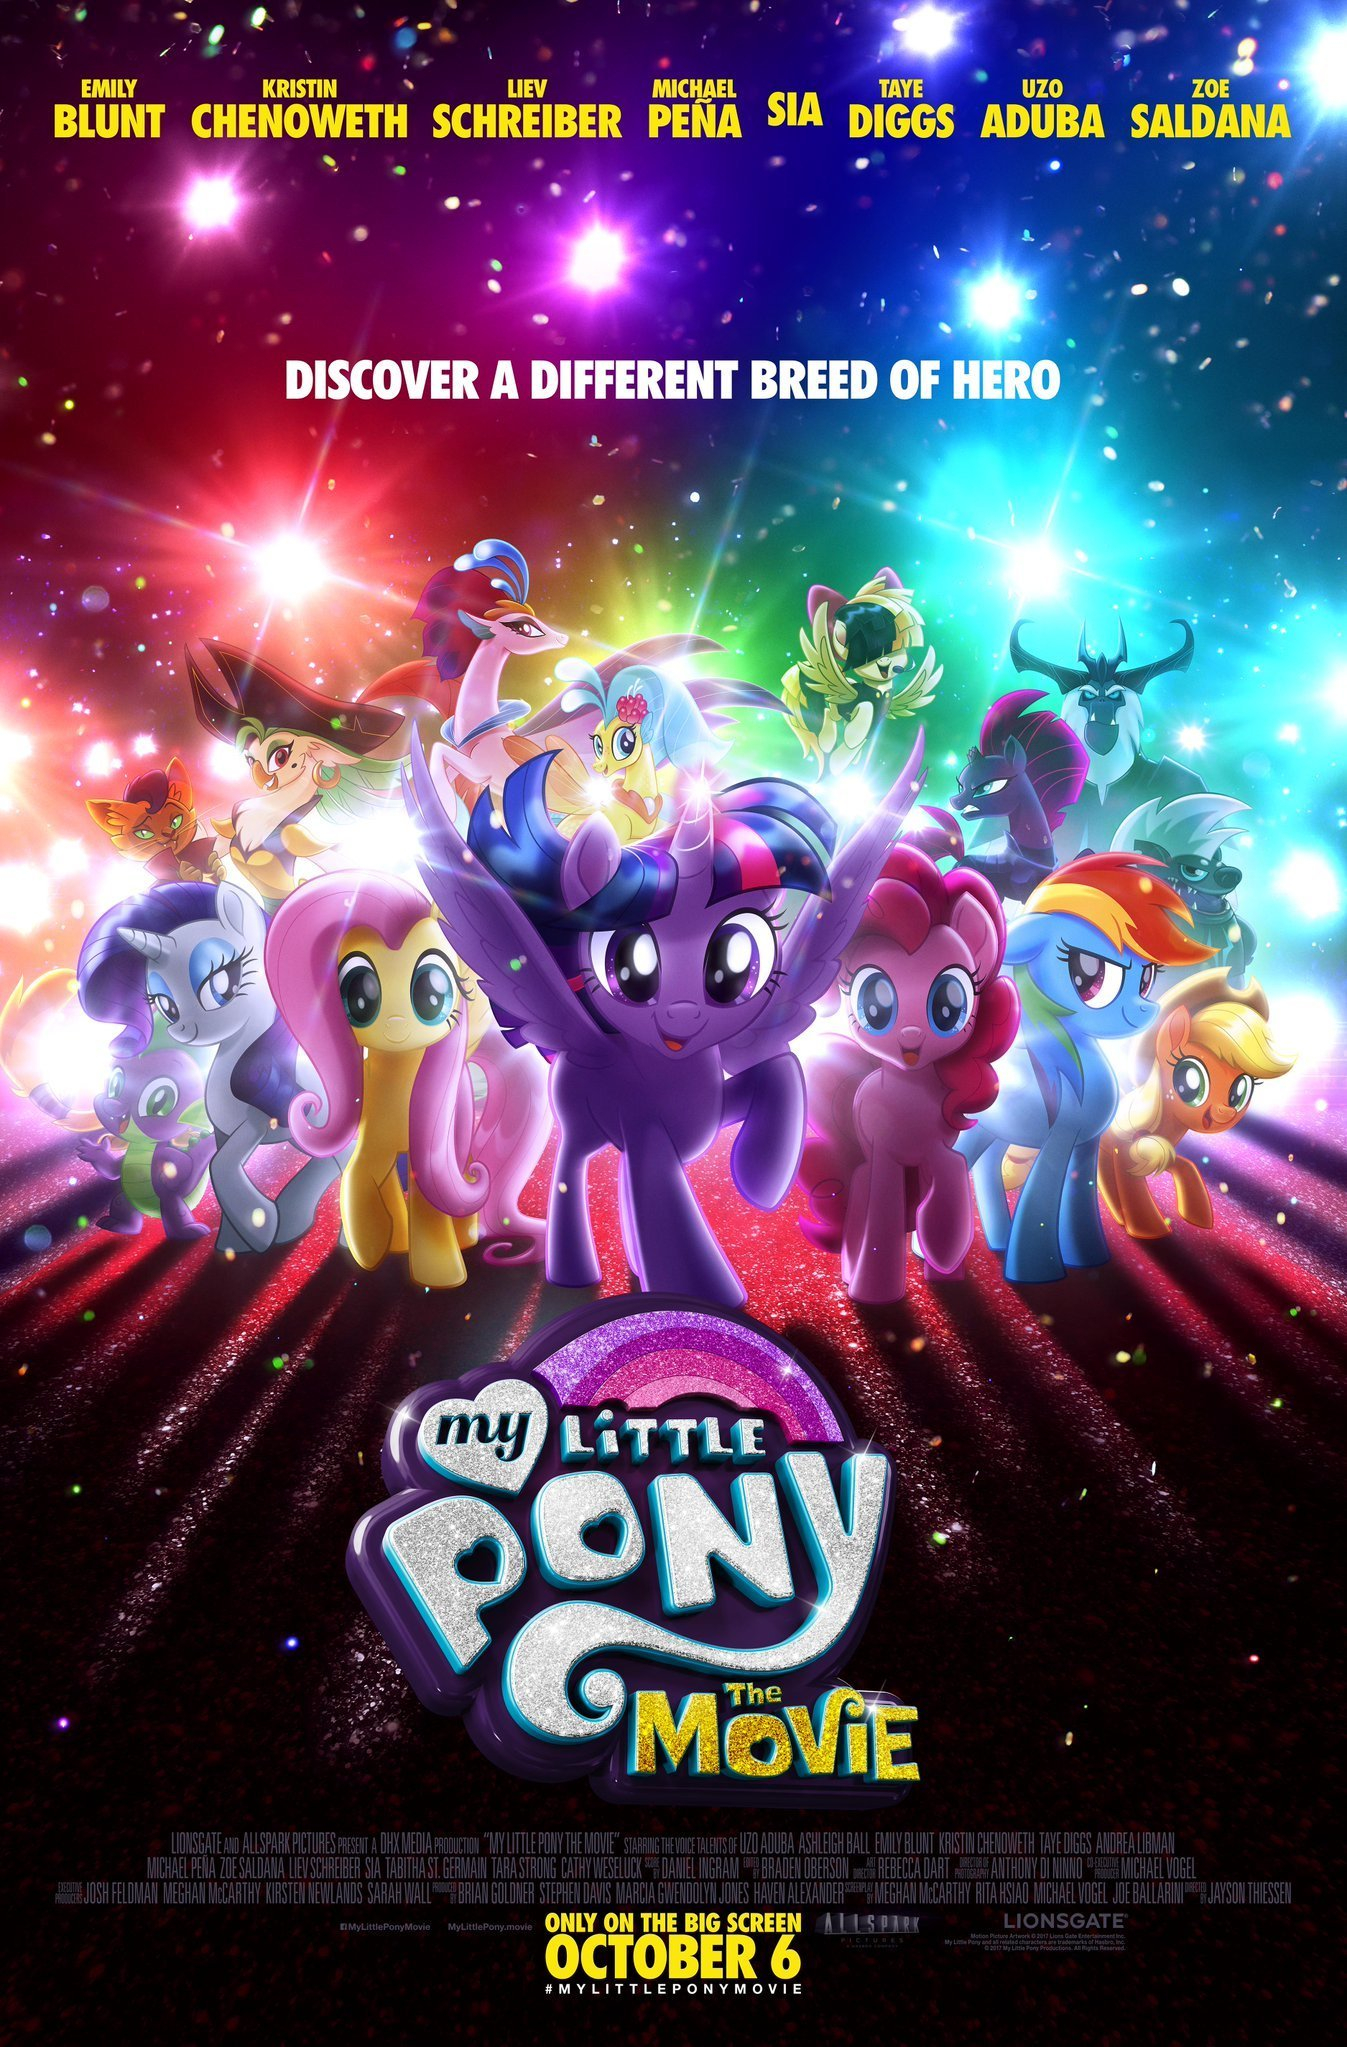 Mlp Resume - My Little Pony the Movie 2017 Wiki